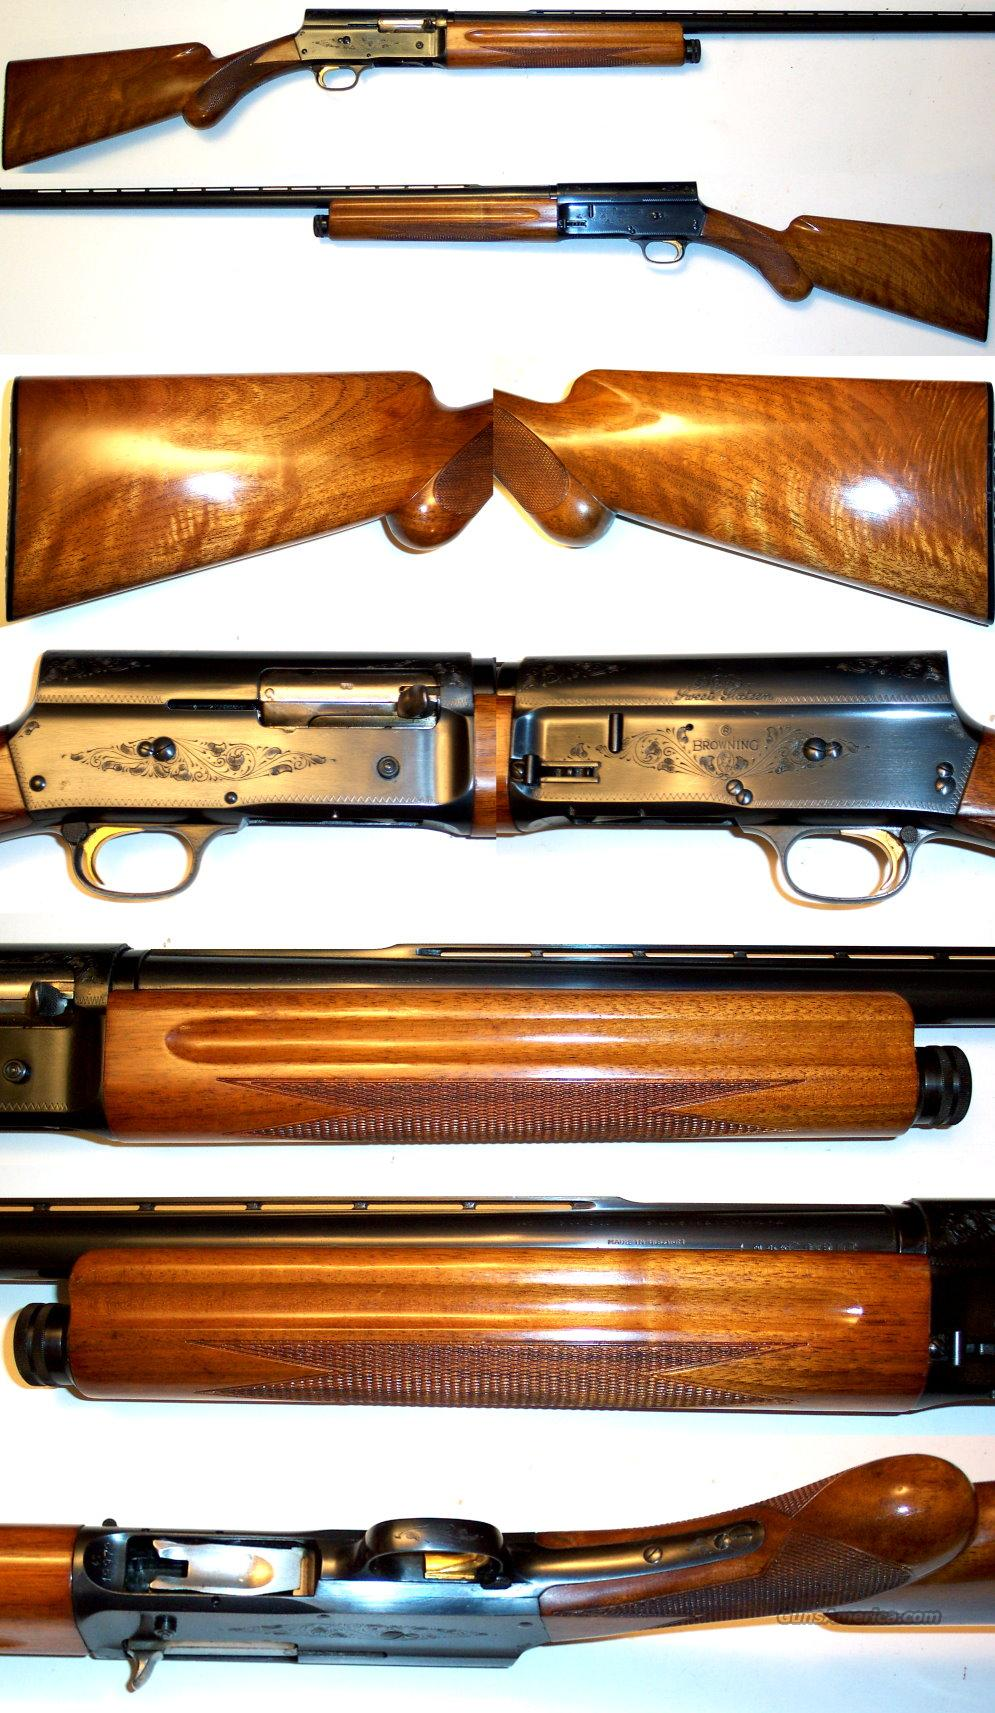 '64 Belgium Browning A5 Sweet Sixteen 28 Mod VR  Guns > Shotguns > Browning Shotguns > Autoloaders > Hunting